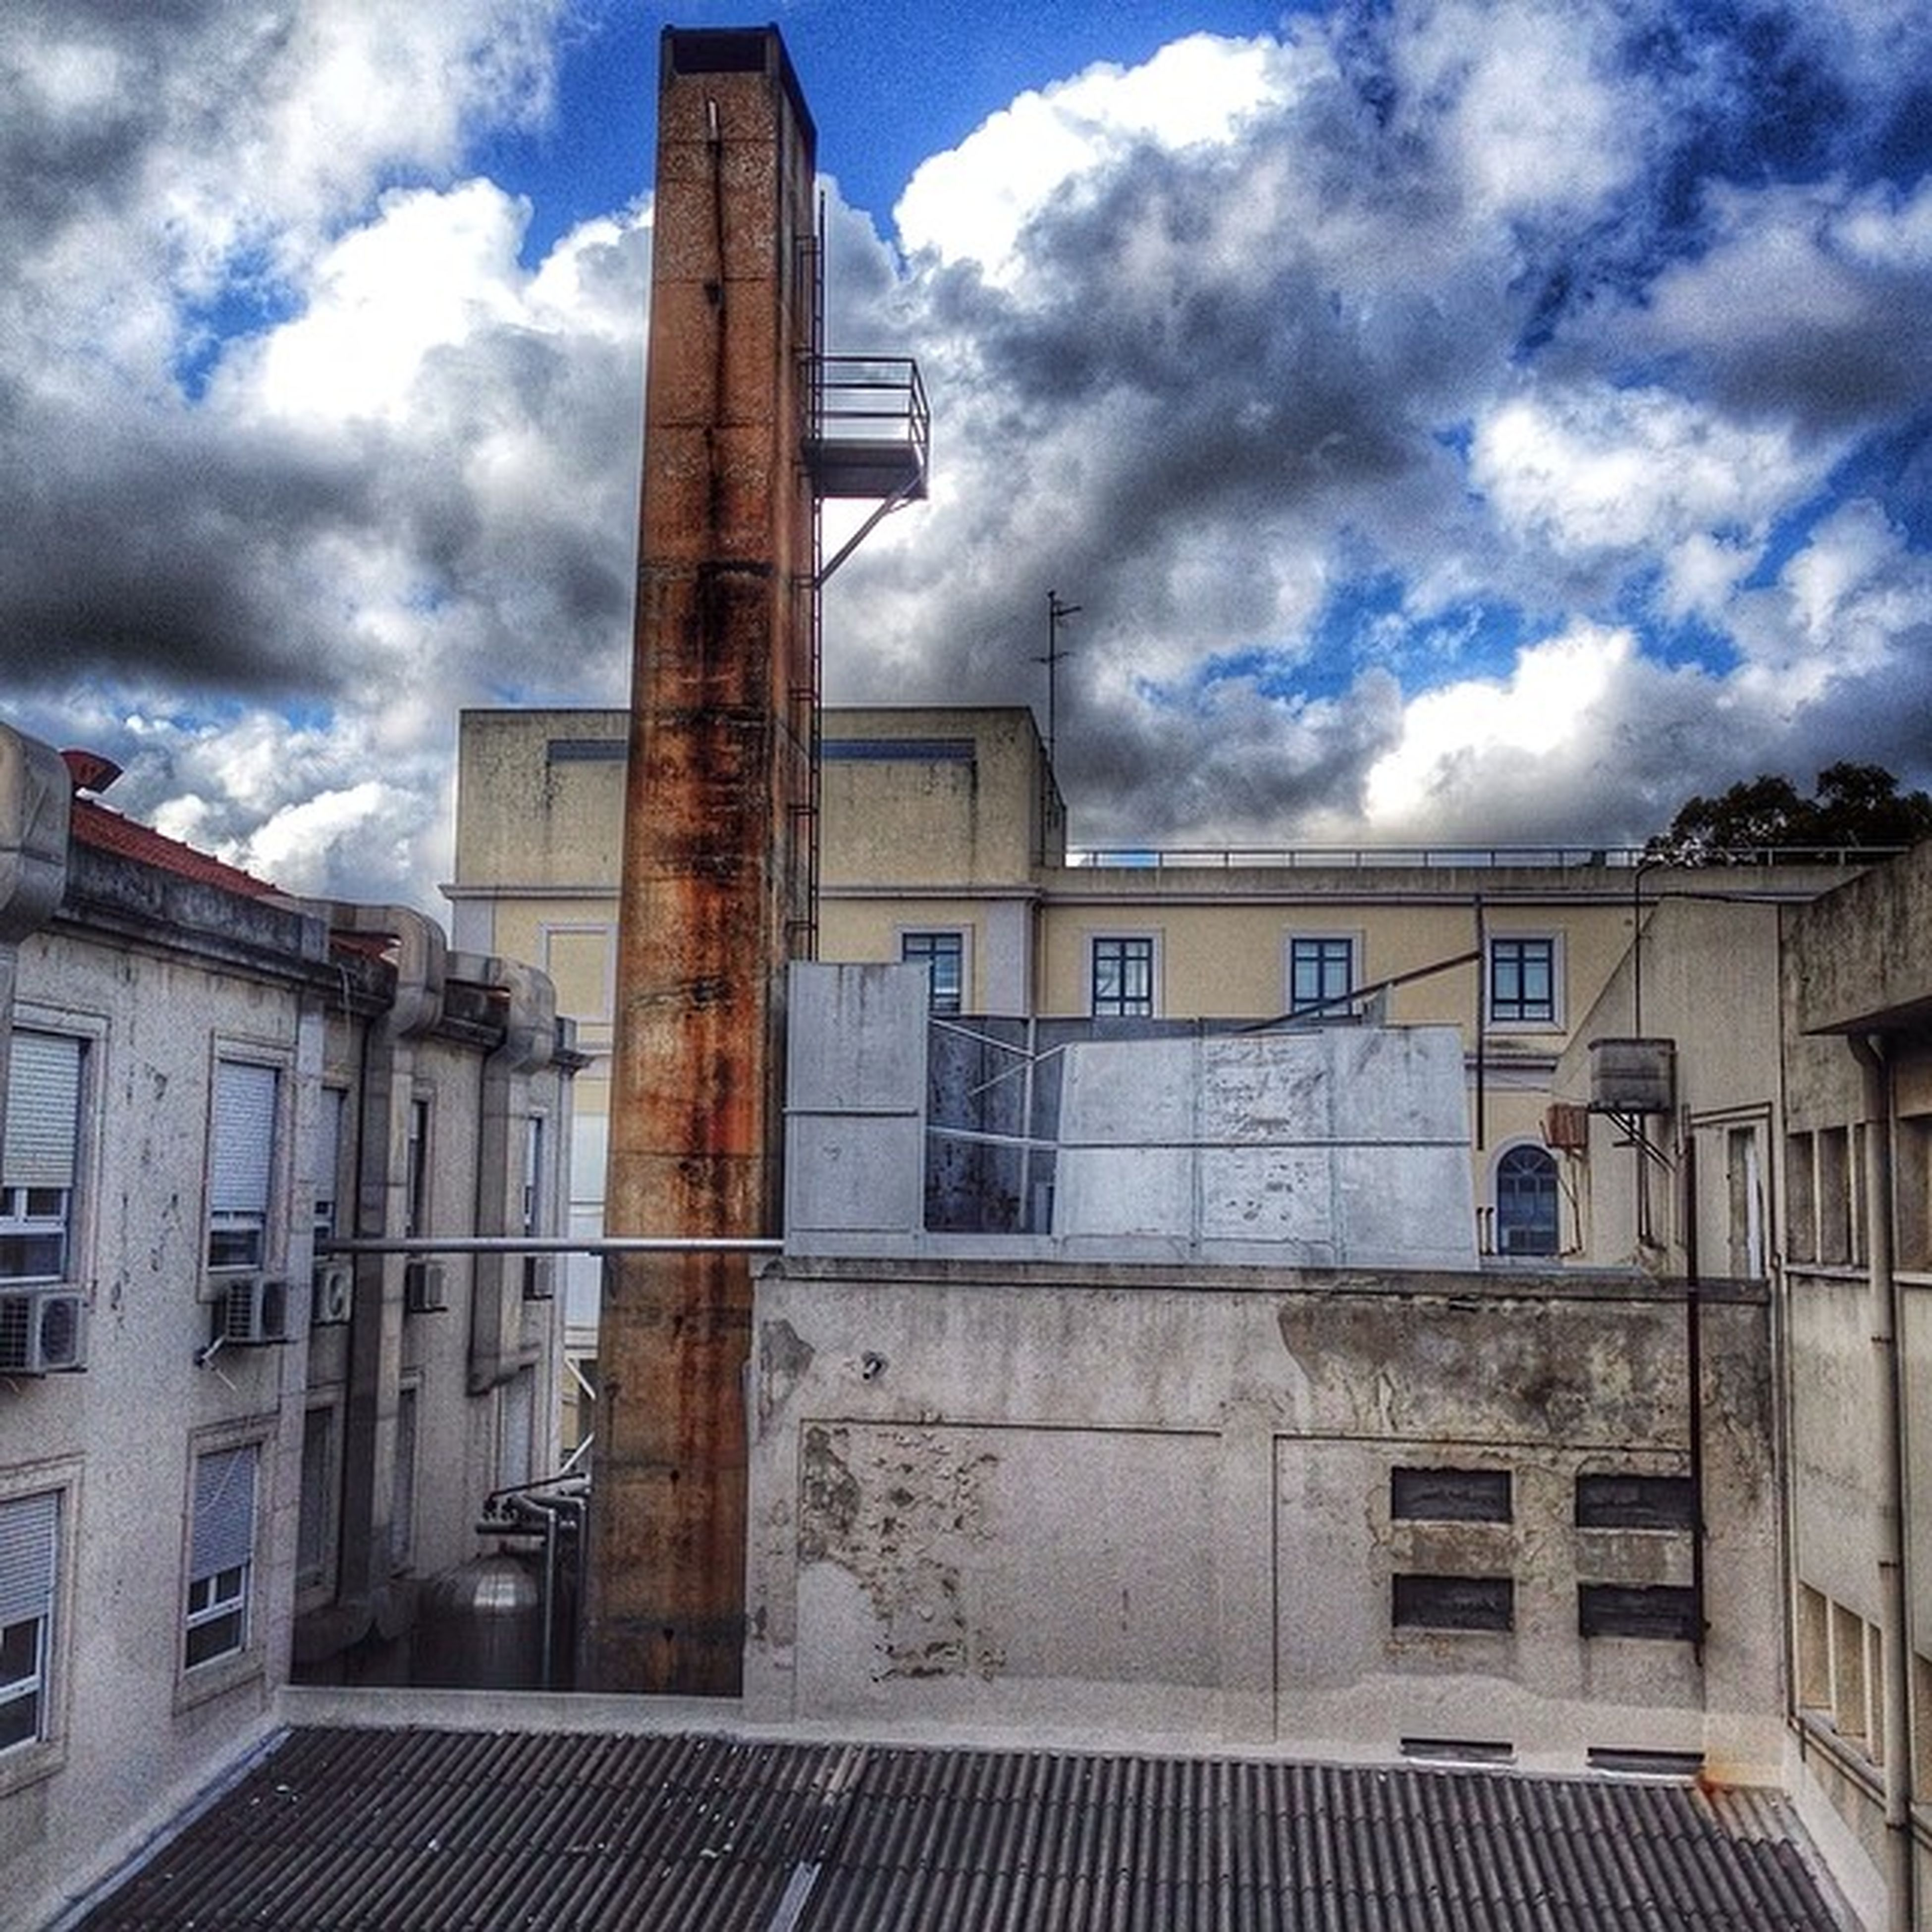 architecture, built structure, building exterior, sky, cloud - sky, cloudy, window, cloud, building, low angle view, exterior, residential building, residential structure, facade, day, old, city, outdoors, no people, house